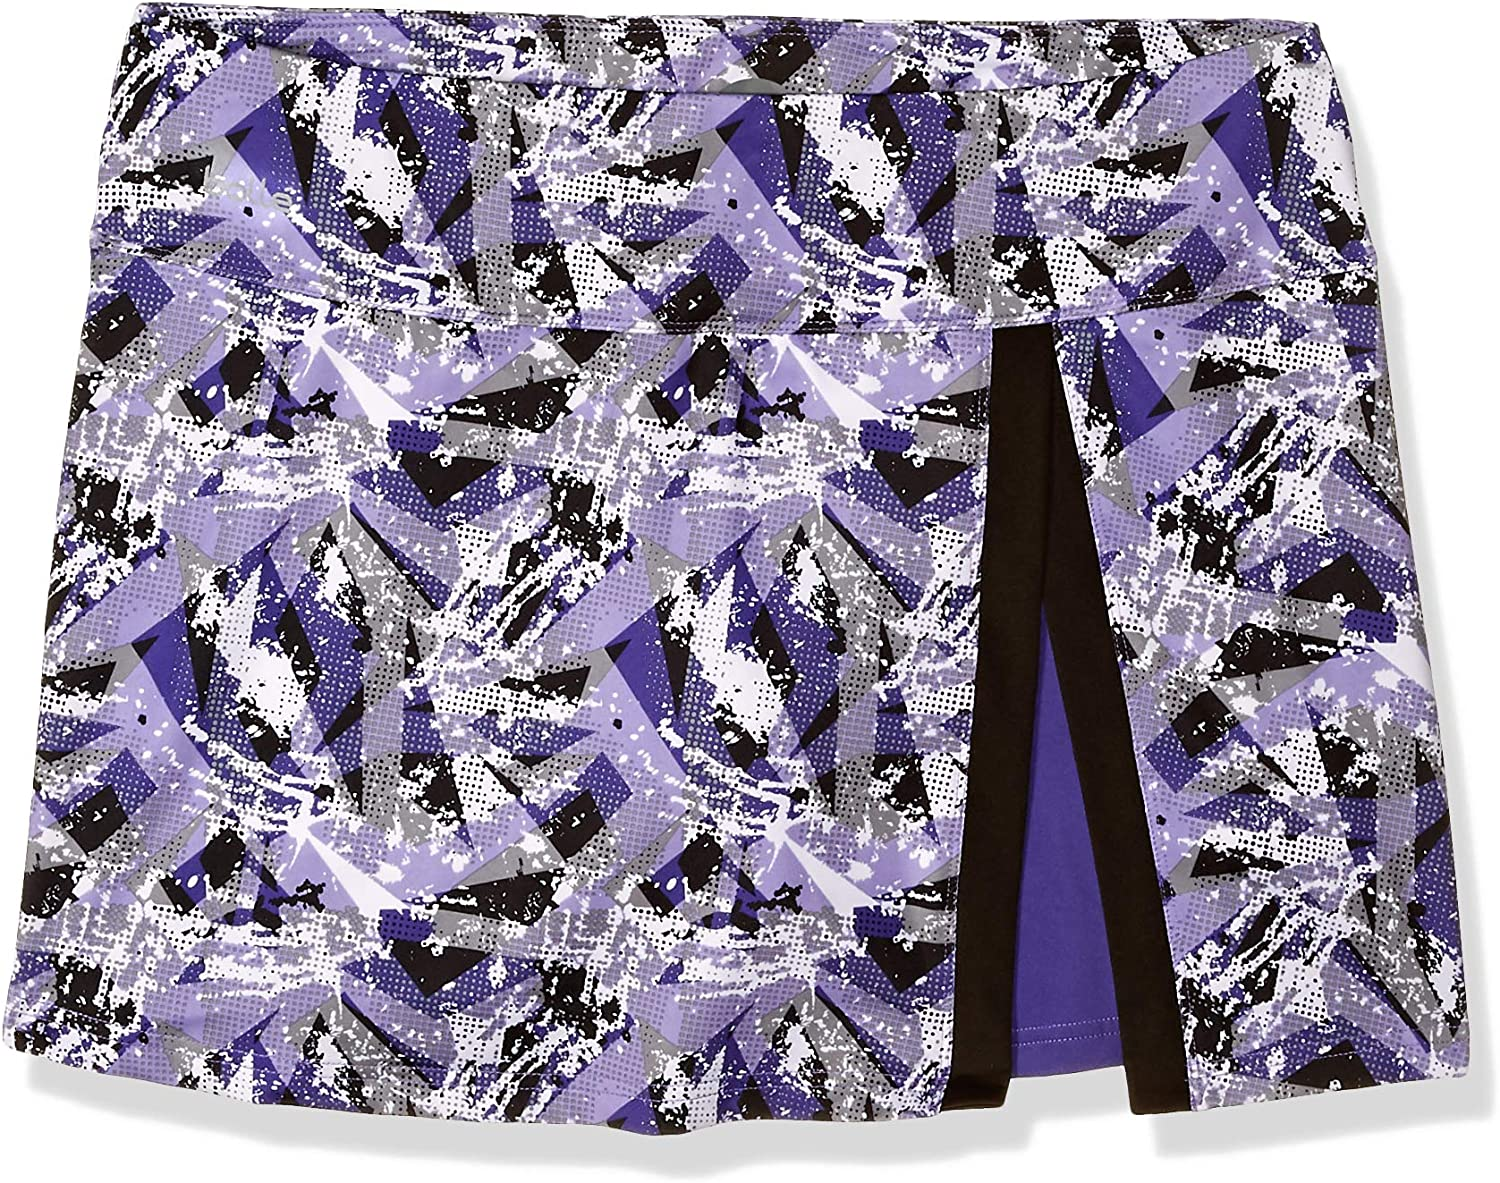 Bollé Purple Passion Printed Tennis Skirt with Shorts